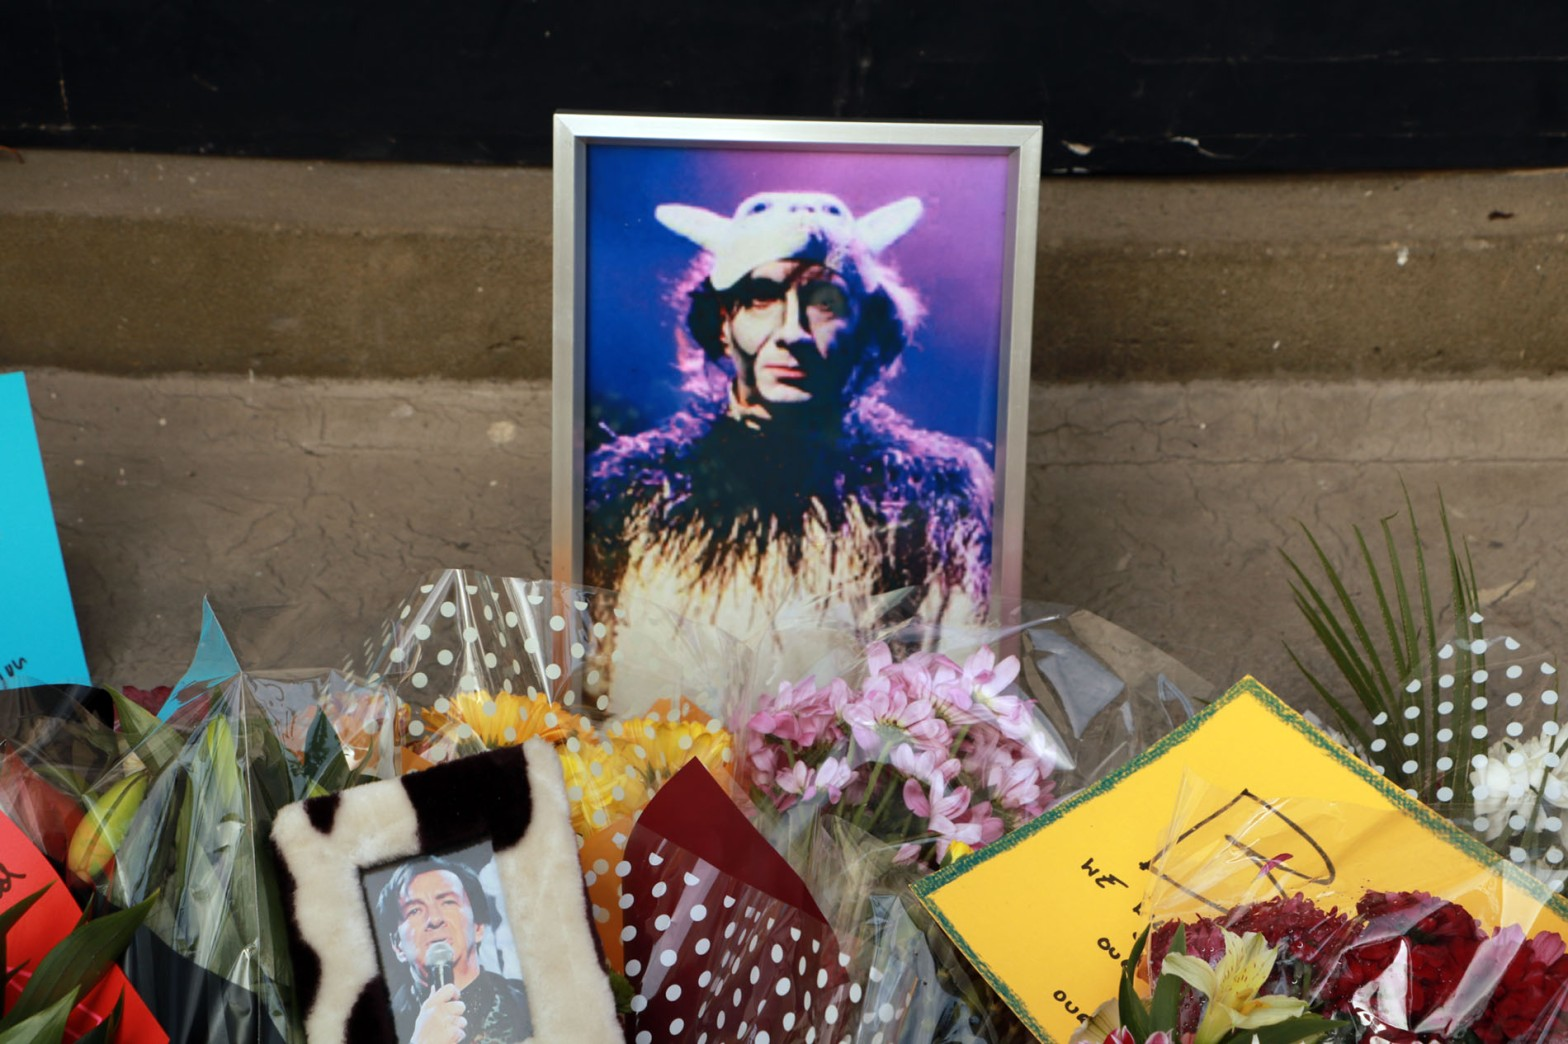 Photographs of Brian Pern surrounded by bouquets of flowers lie on the front steps of a house.